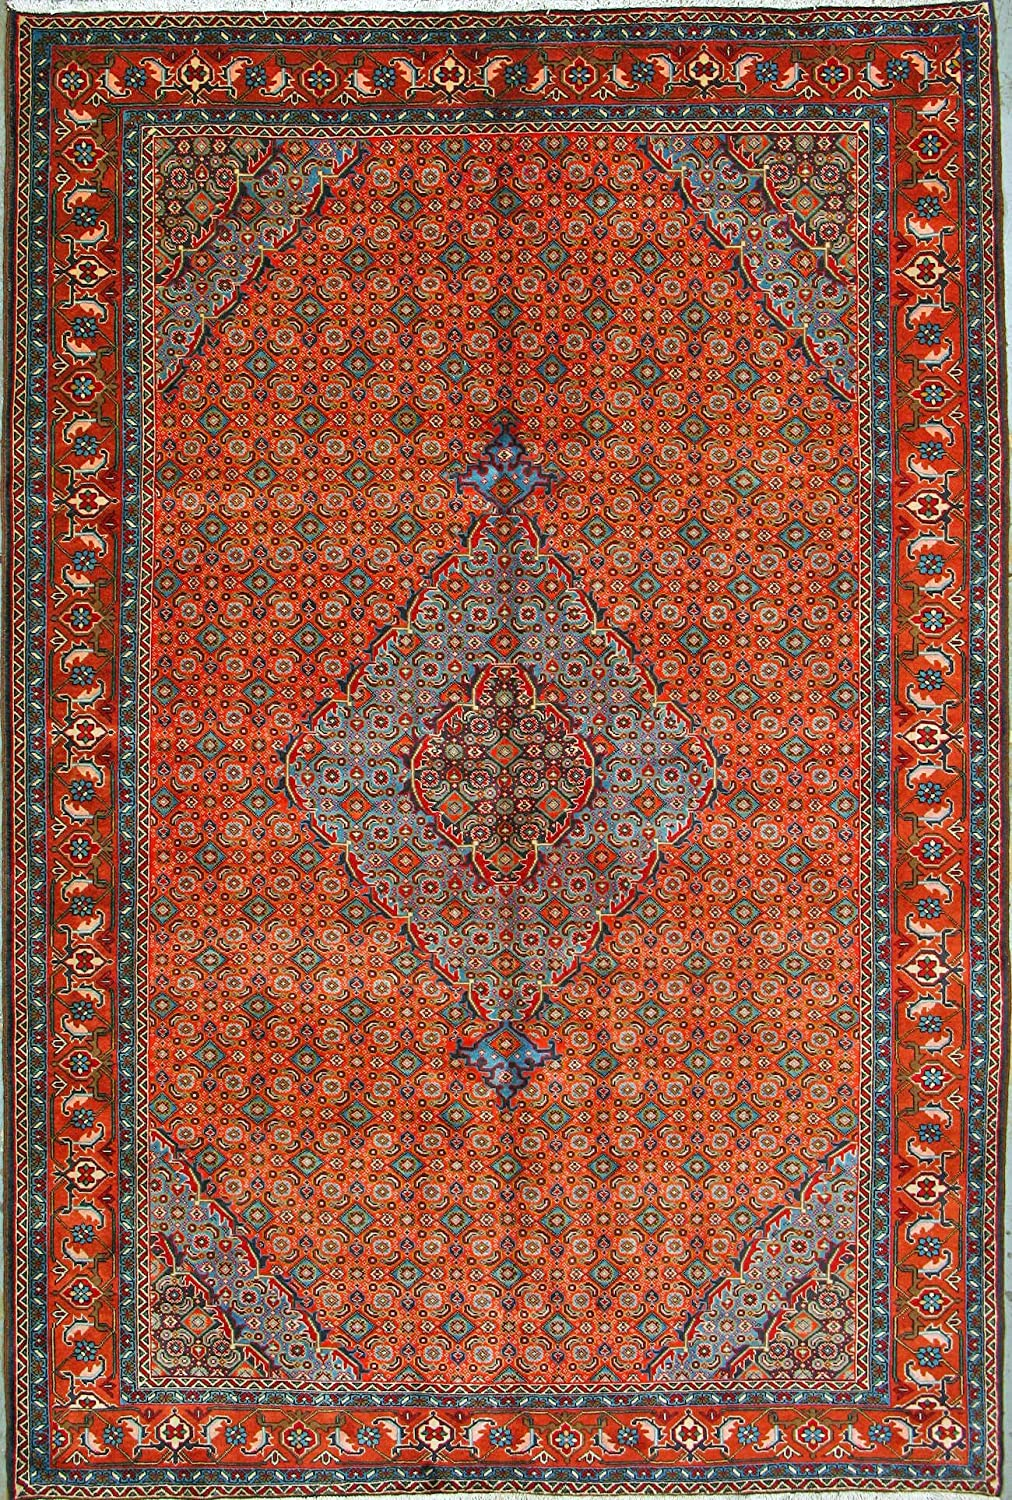 Armanrugs 6 8 X 9 10 Copper Red Brown Blue Ardabil Natural Wool Hand Knotted Genuine Persian Rug Kitchen Dining